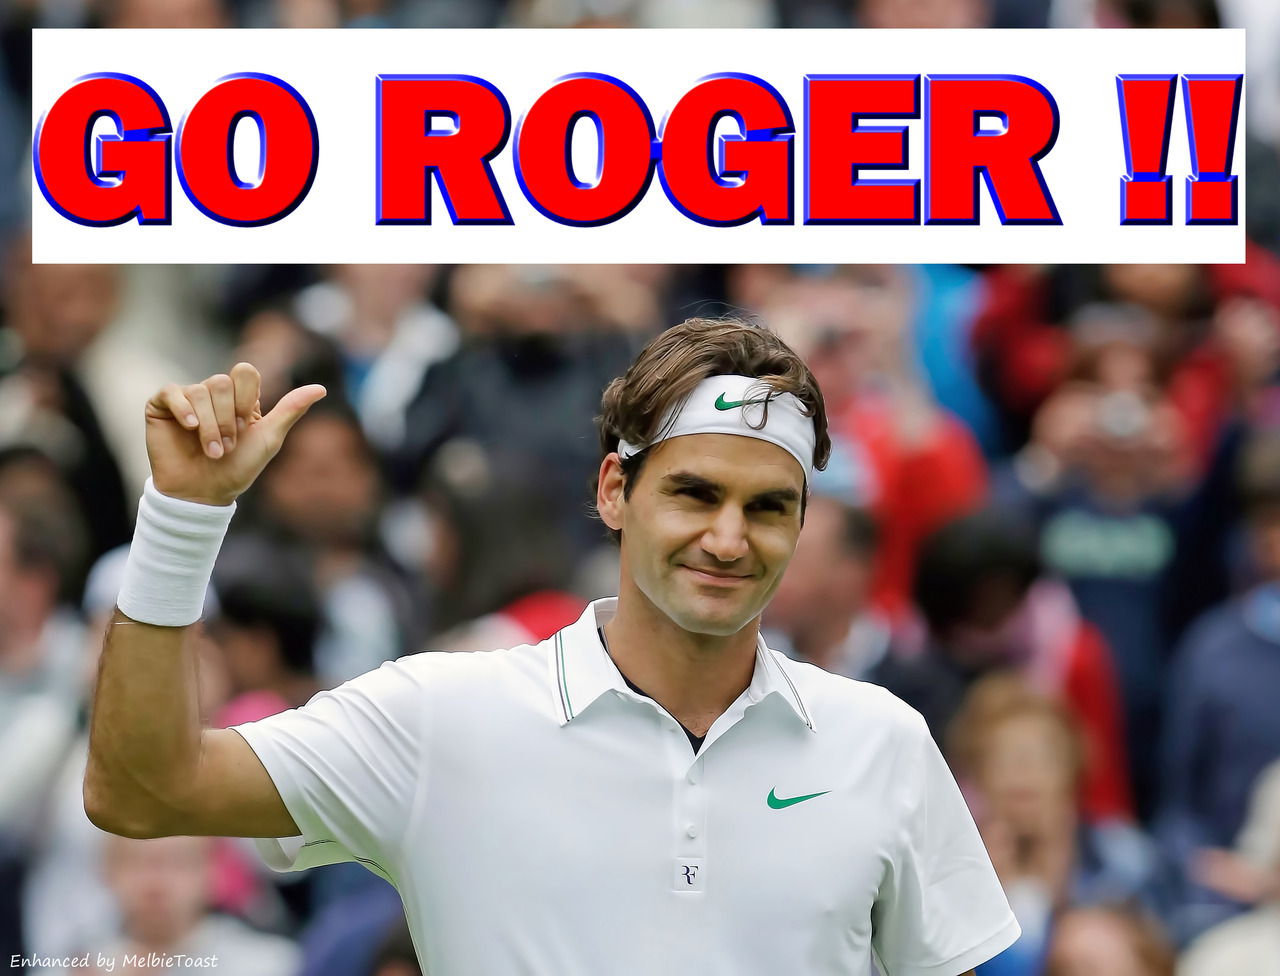 melbietoast:  In about 3 hours, Roger Federer will face top rival Novak DJokovic in his Wimbledon Semi-Final!! I can hardly wait and I so want Roger to WIN!!!! Some facts to consider: Roger Federer is known for brilliance, for elegance, for wondrous shots that few players in history have been able to execute. Federer, 30, is widely hailed as the greatest tennis player of all time, boasting a record haul of 16 Grand Slam titles. In a few hours, Roger will play his semi-final at Wimbledon against Novak Djokovic. A record-equaling seventh Wimbledon title for Roger would also see him topple Djokovic, 25, to be #1 (he is already guaranteed to leapfrog Rafa Nadal into 2nd place). Also, if Roger wins Wimbledon, he will match Pete Sampras for the total number of weeks spent at No.1 – he's currently on 285. GO ROGER !!!  ROGER BEAT DJOKOVIC !!!!! Yippeeeee!!!! GO ROGER!!!